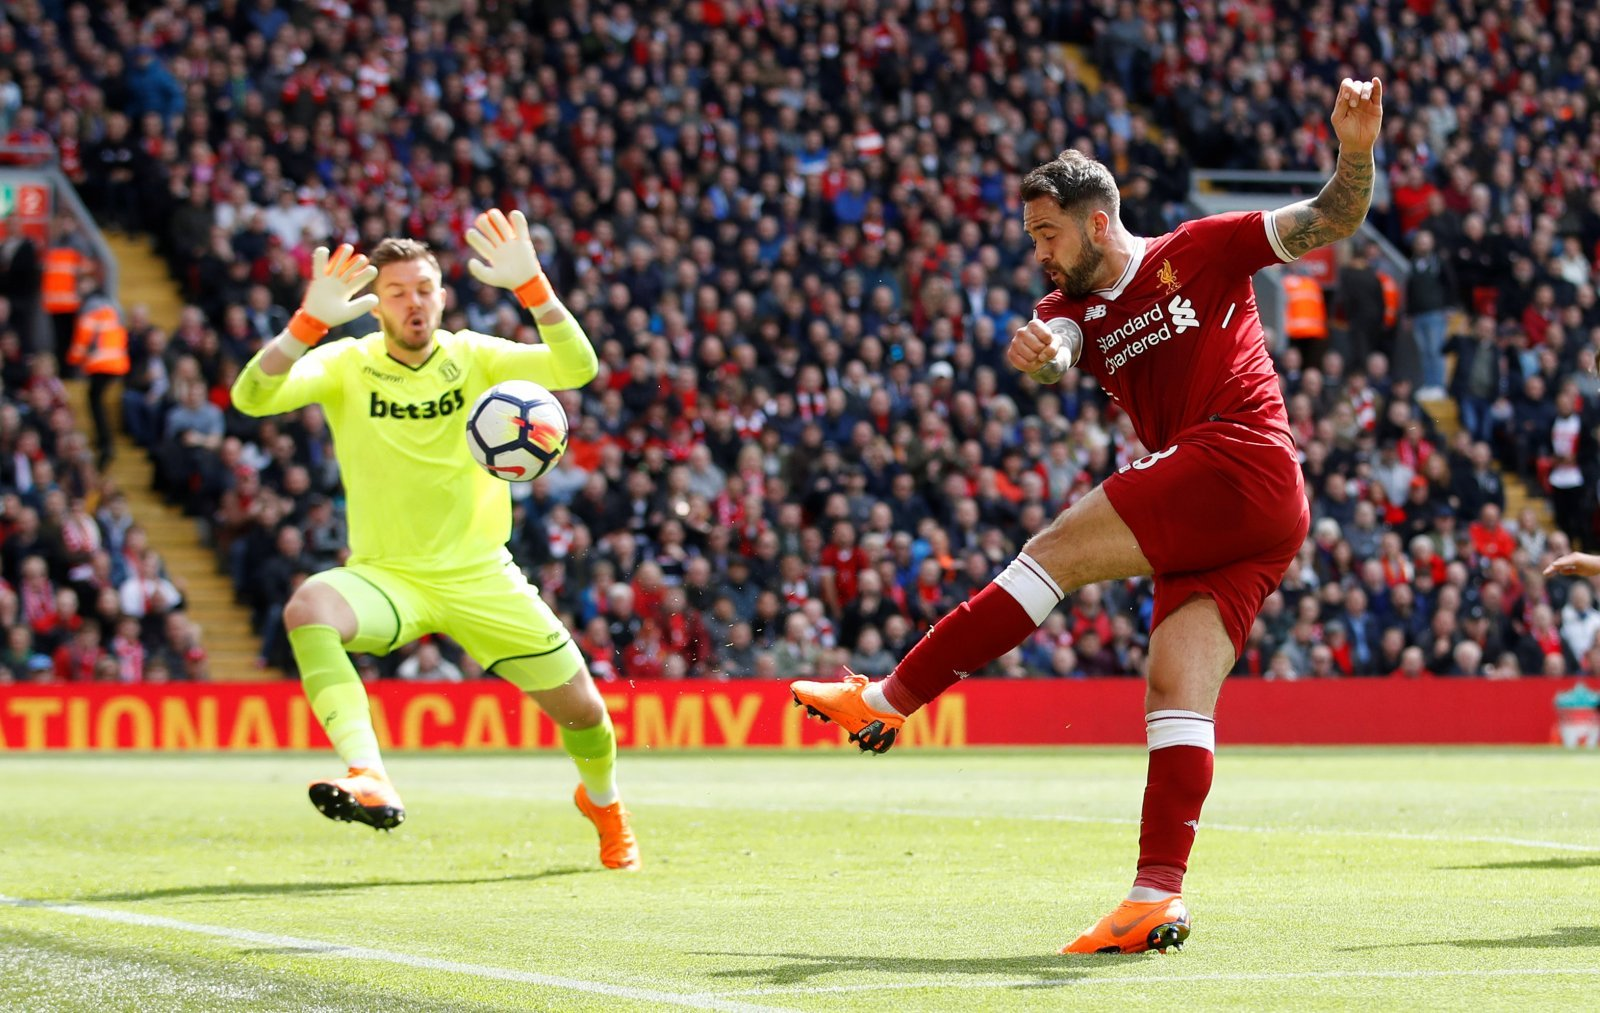 Crystal Palace declare an interest in signing Danny Ings